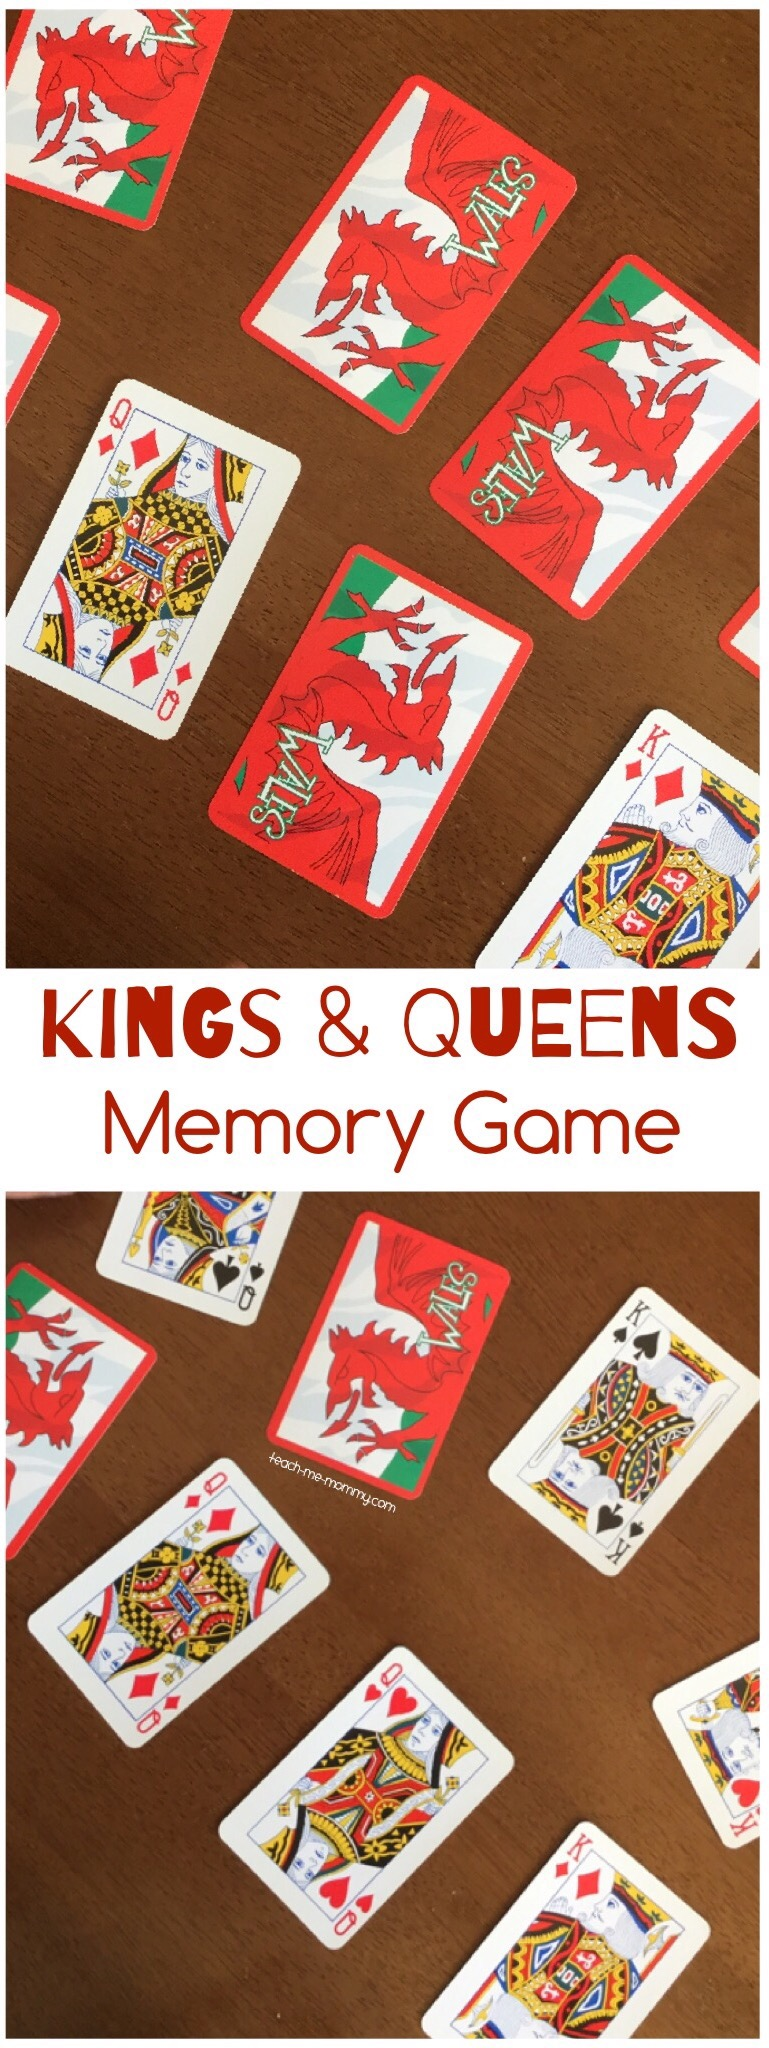 Kings and queens game